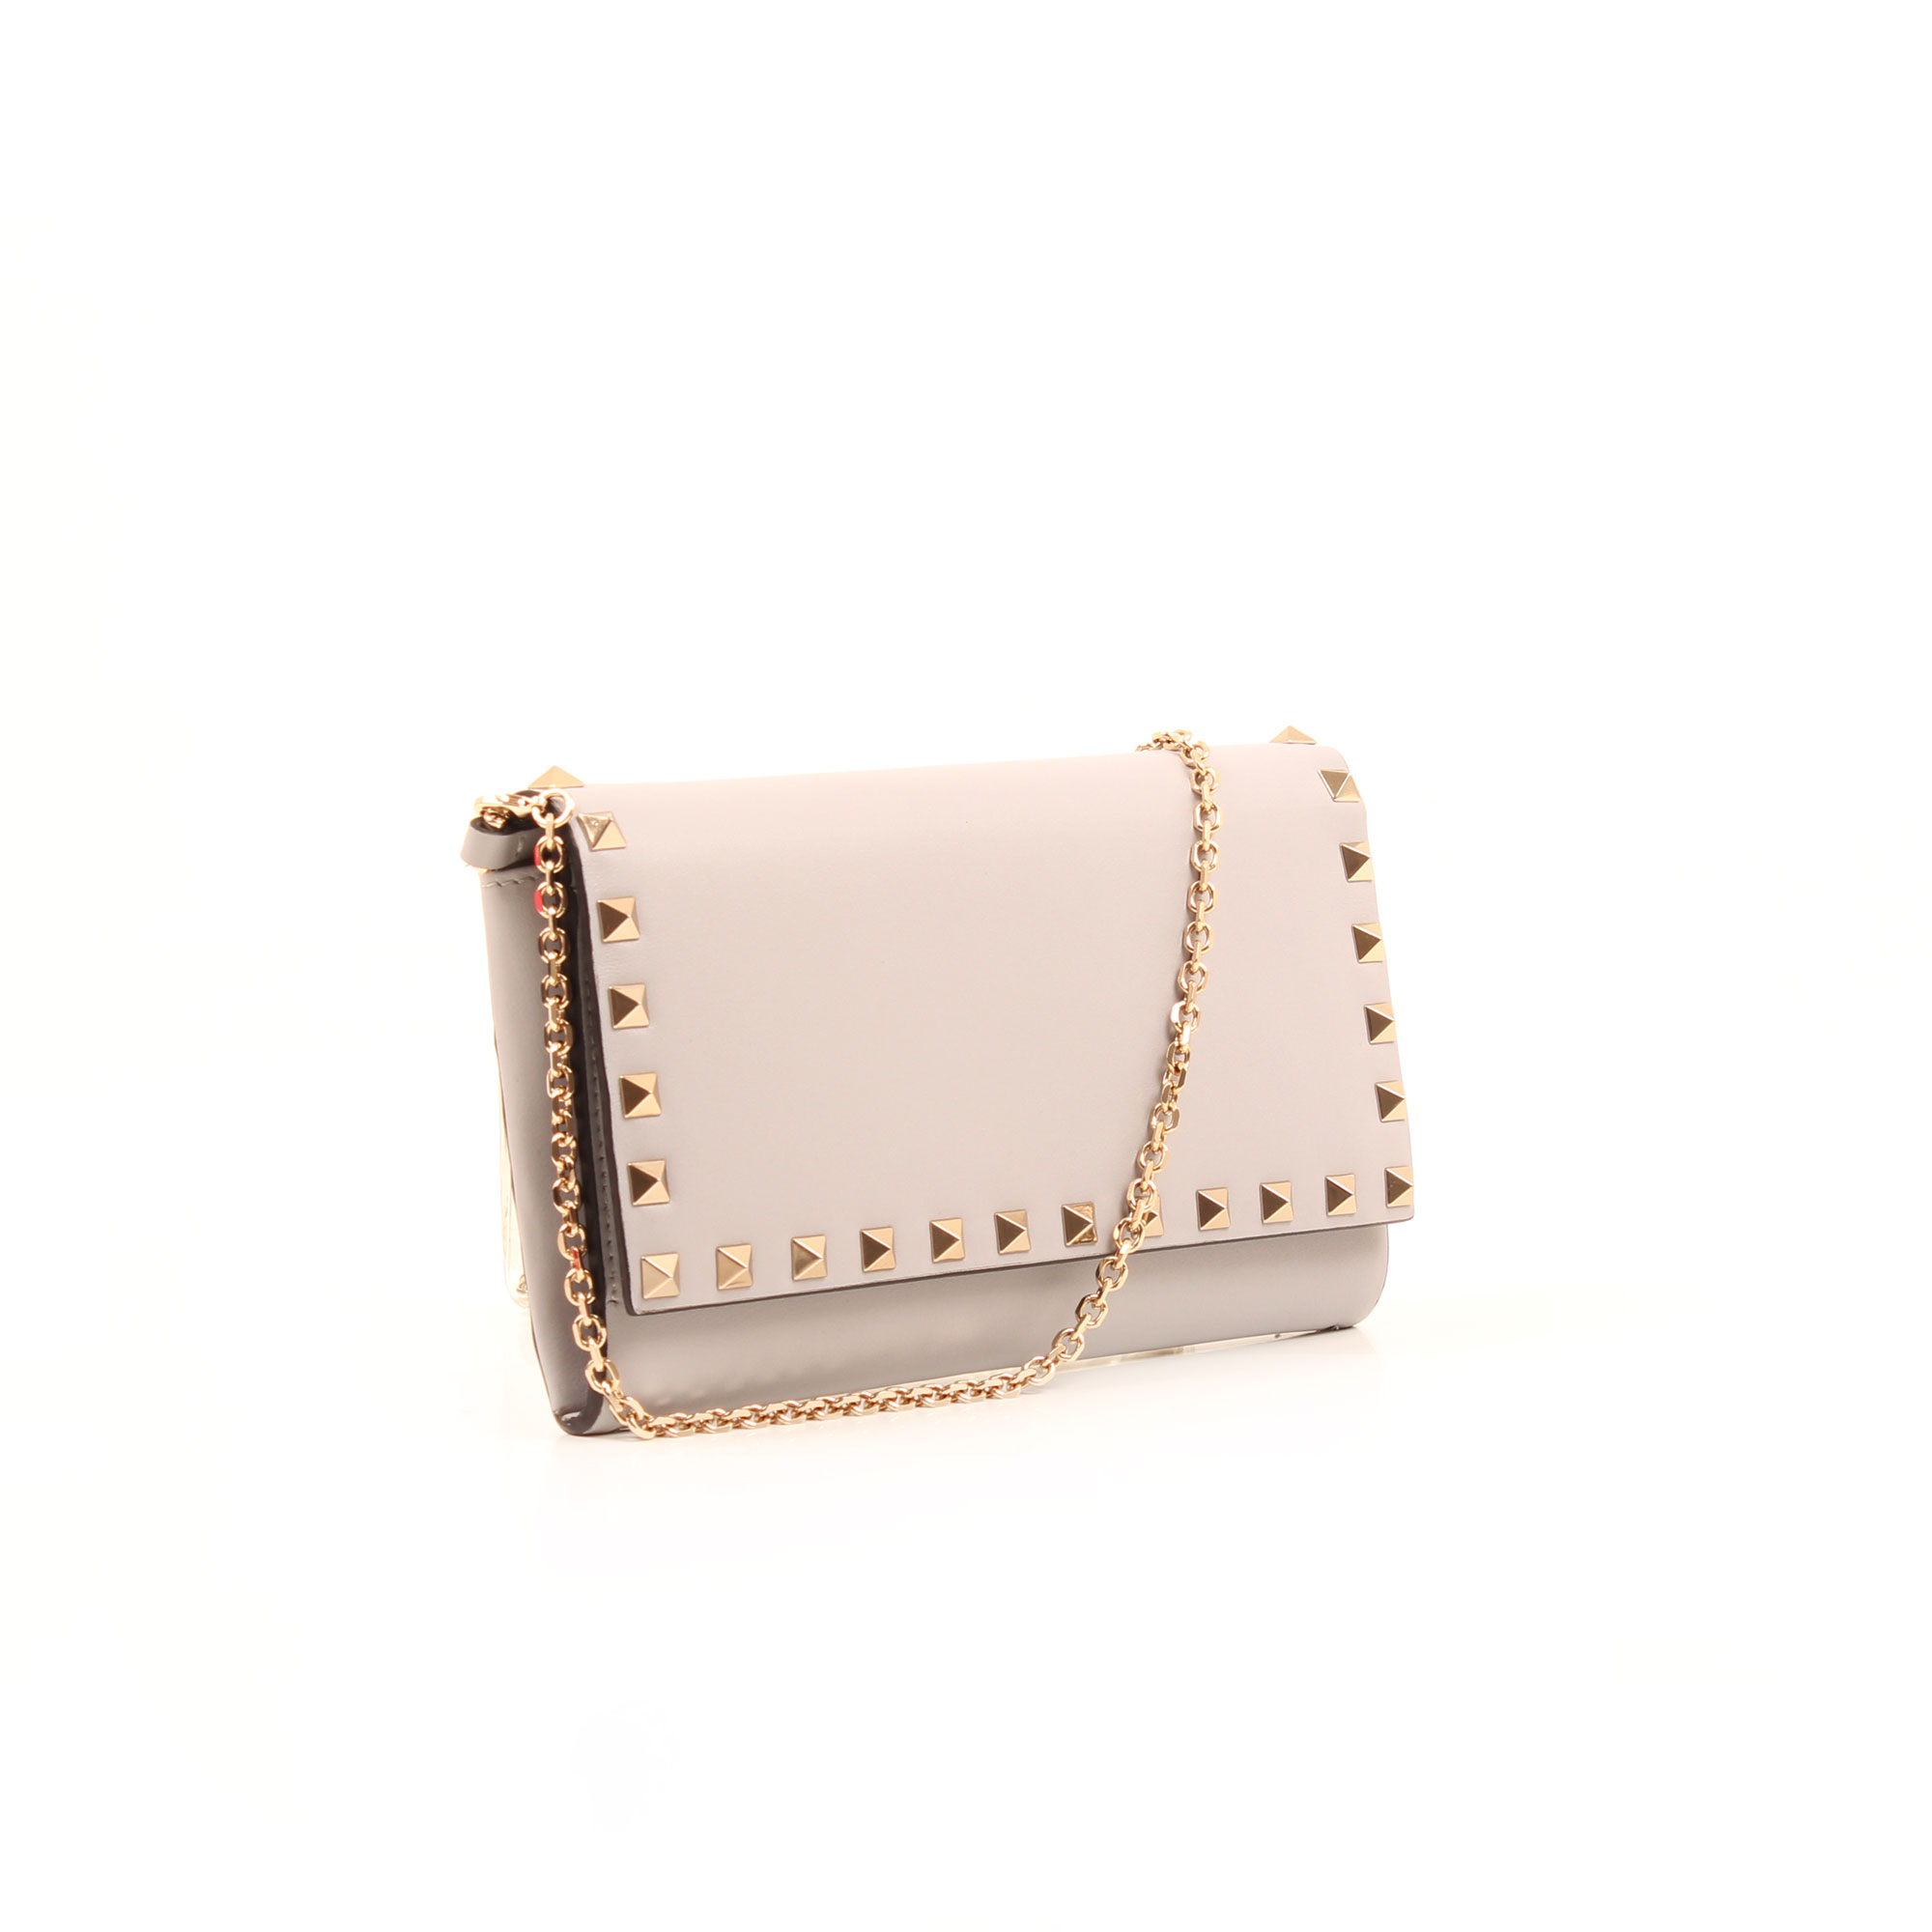 General image 2 of valentino mini rockstud pink bag side clasp